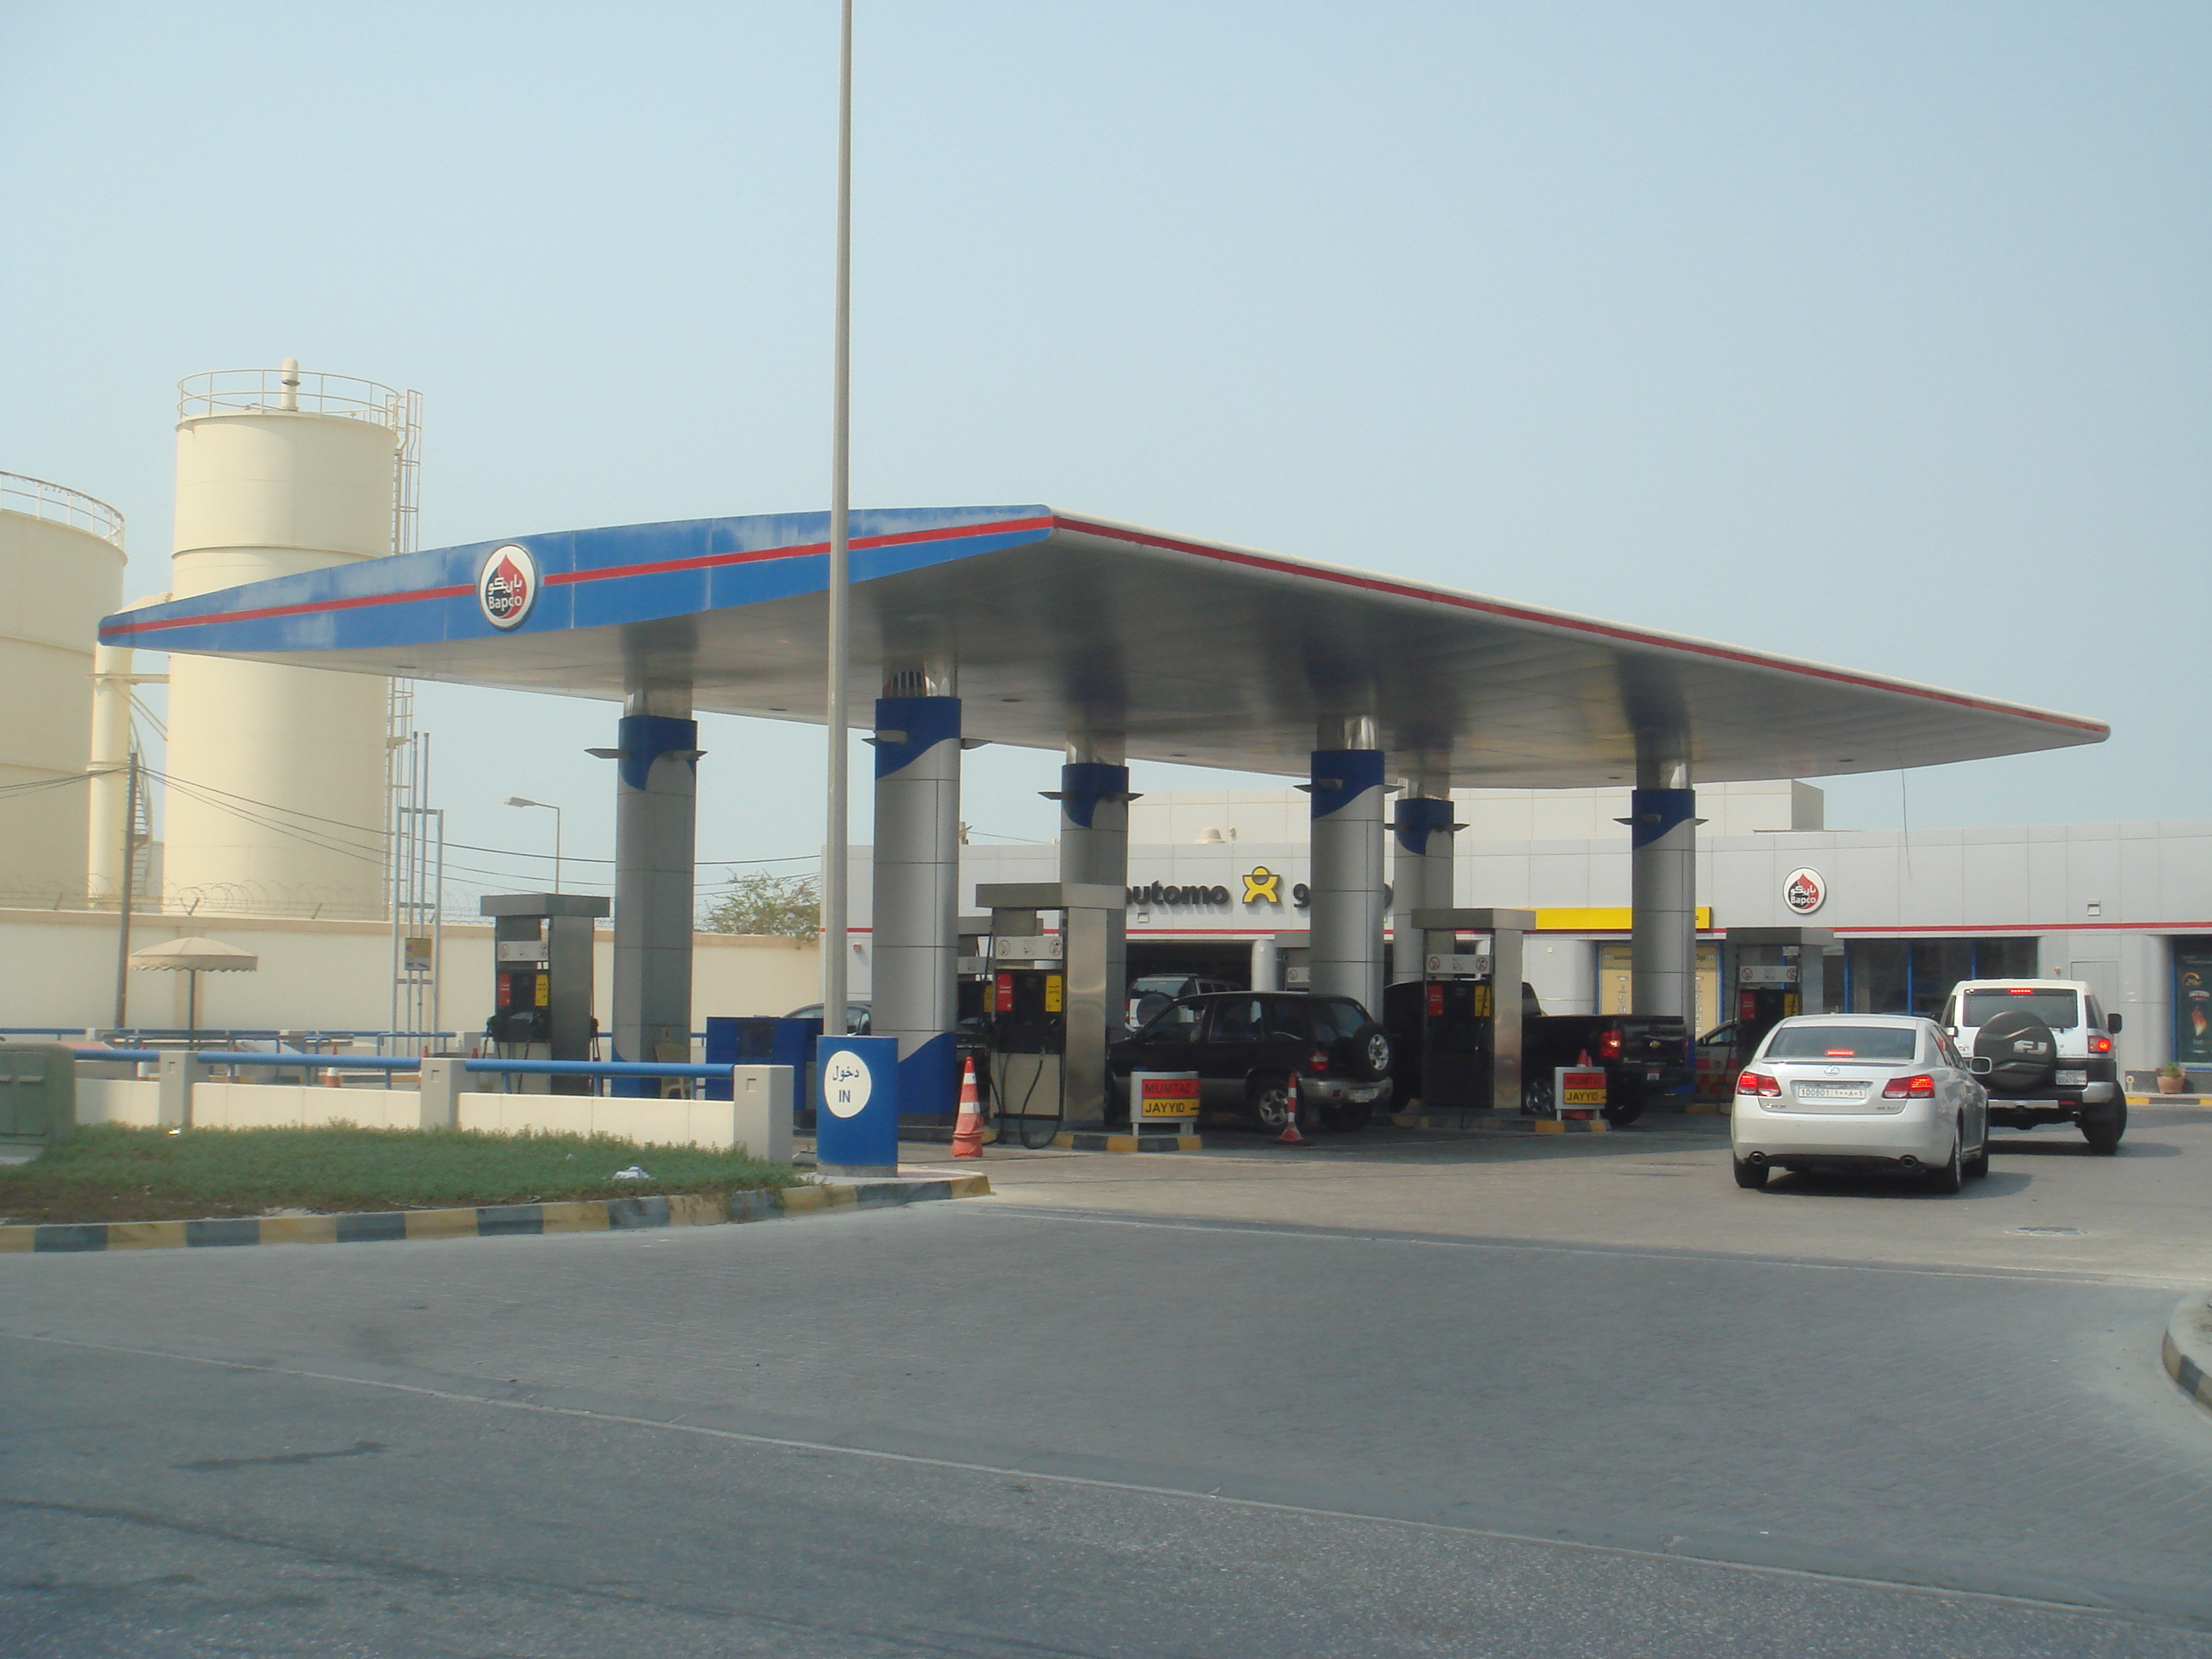 Bapco Petrol Station at Manama